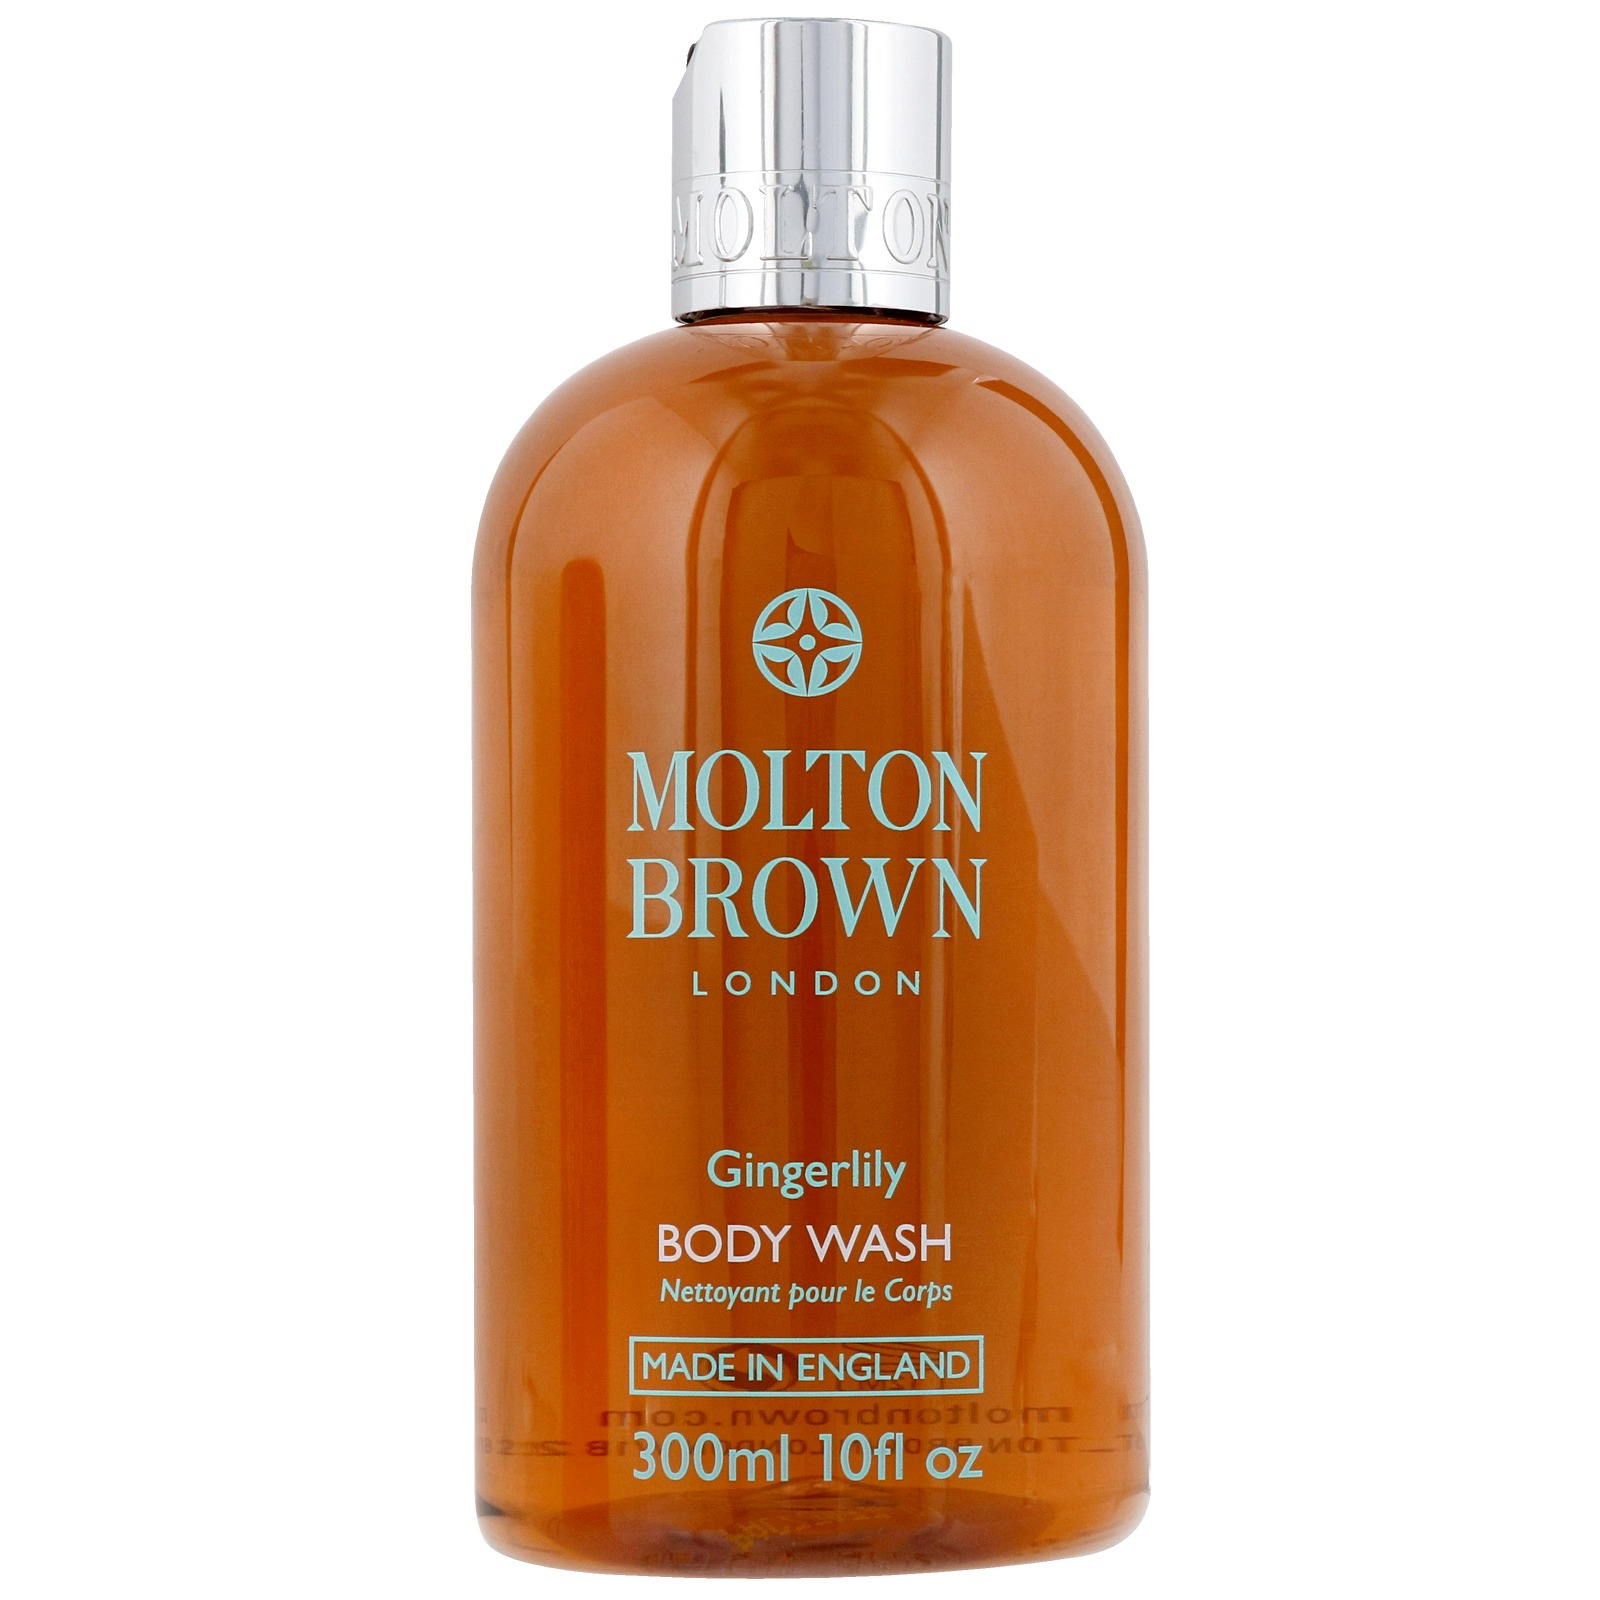 Molton Brown Gingerlily Body Wash 300ml Bath Amp Body